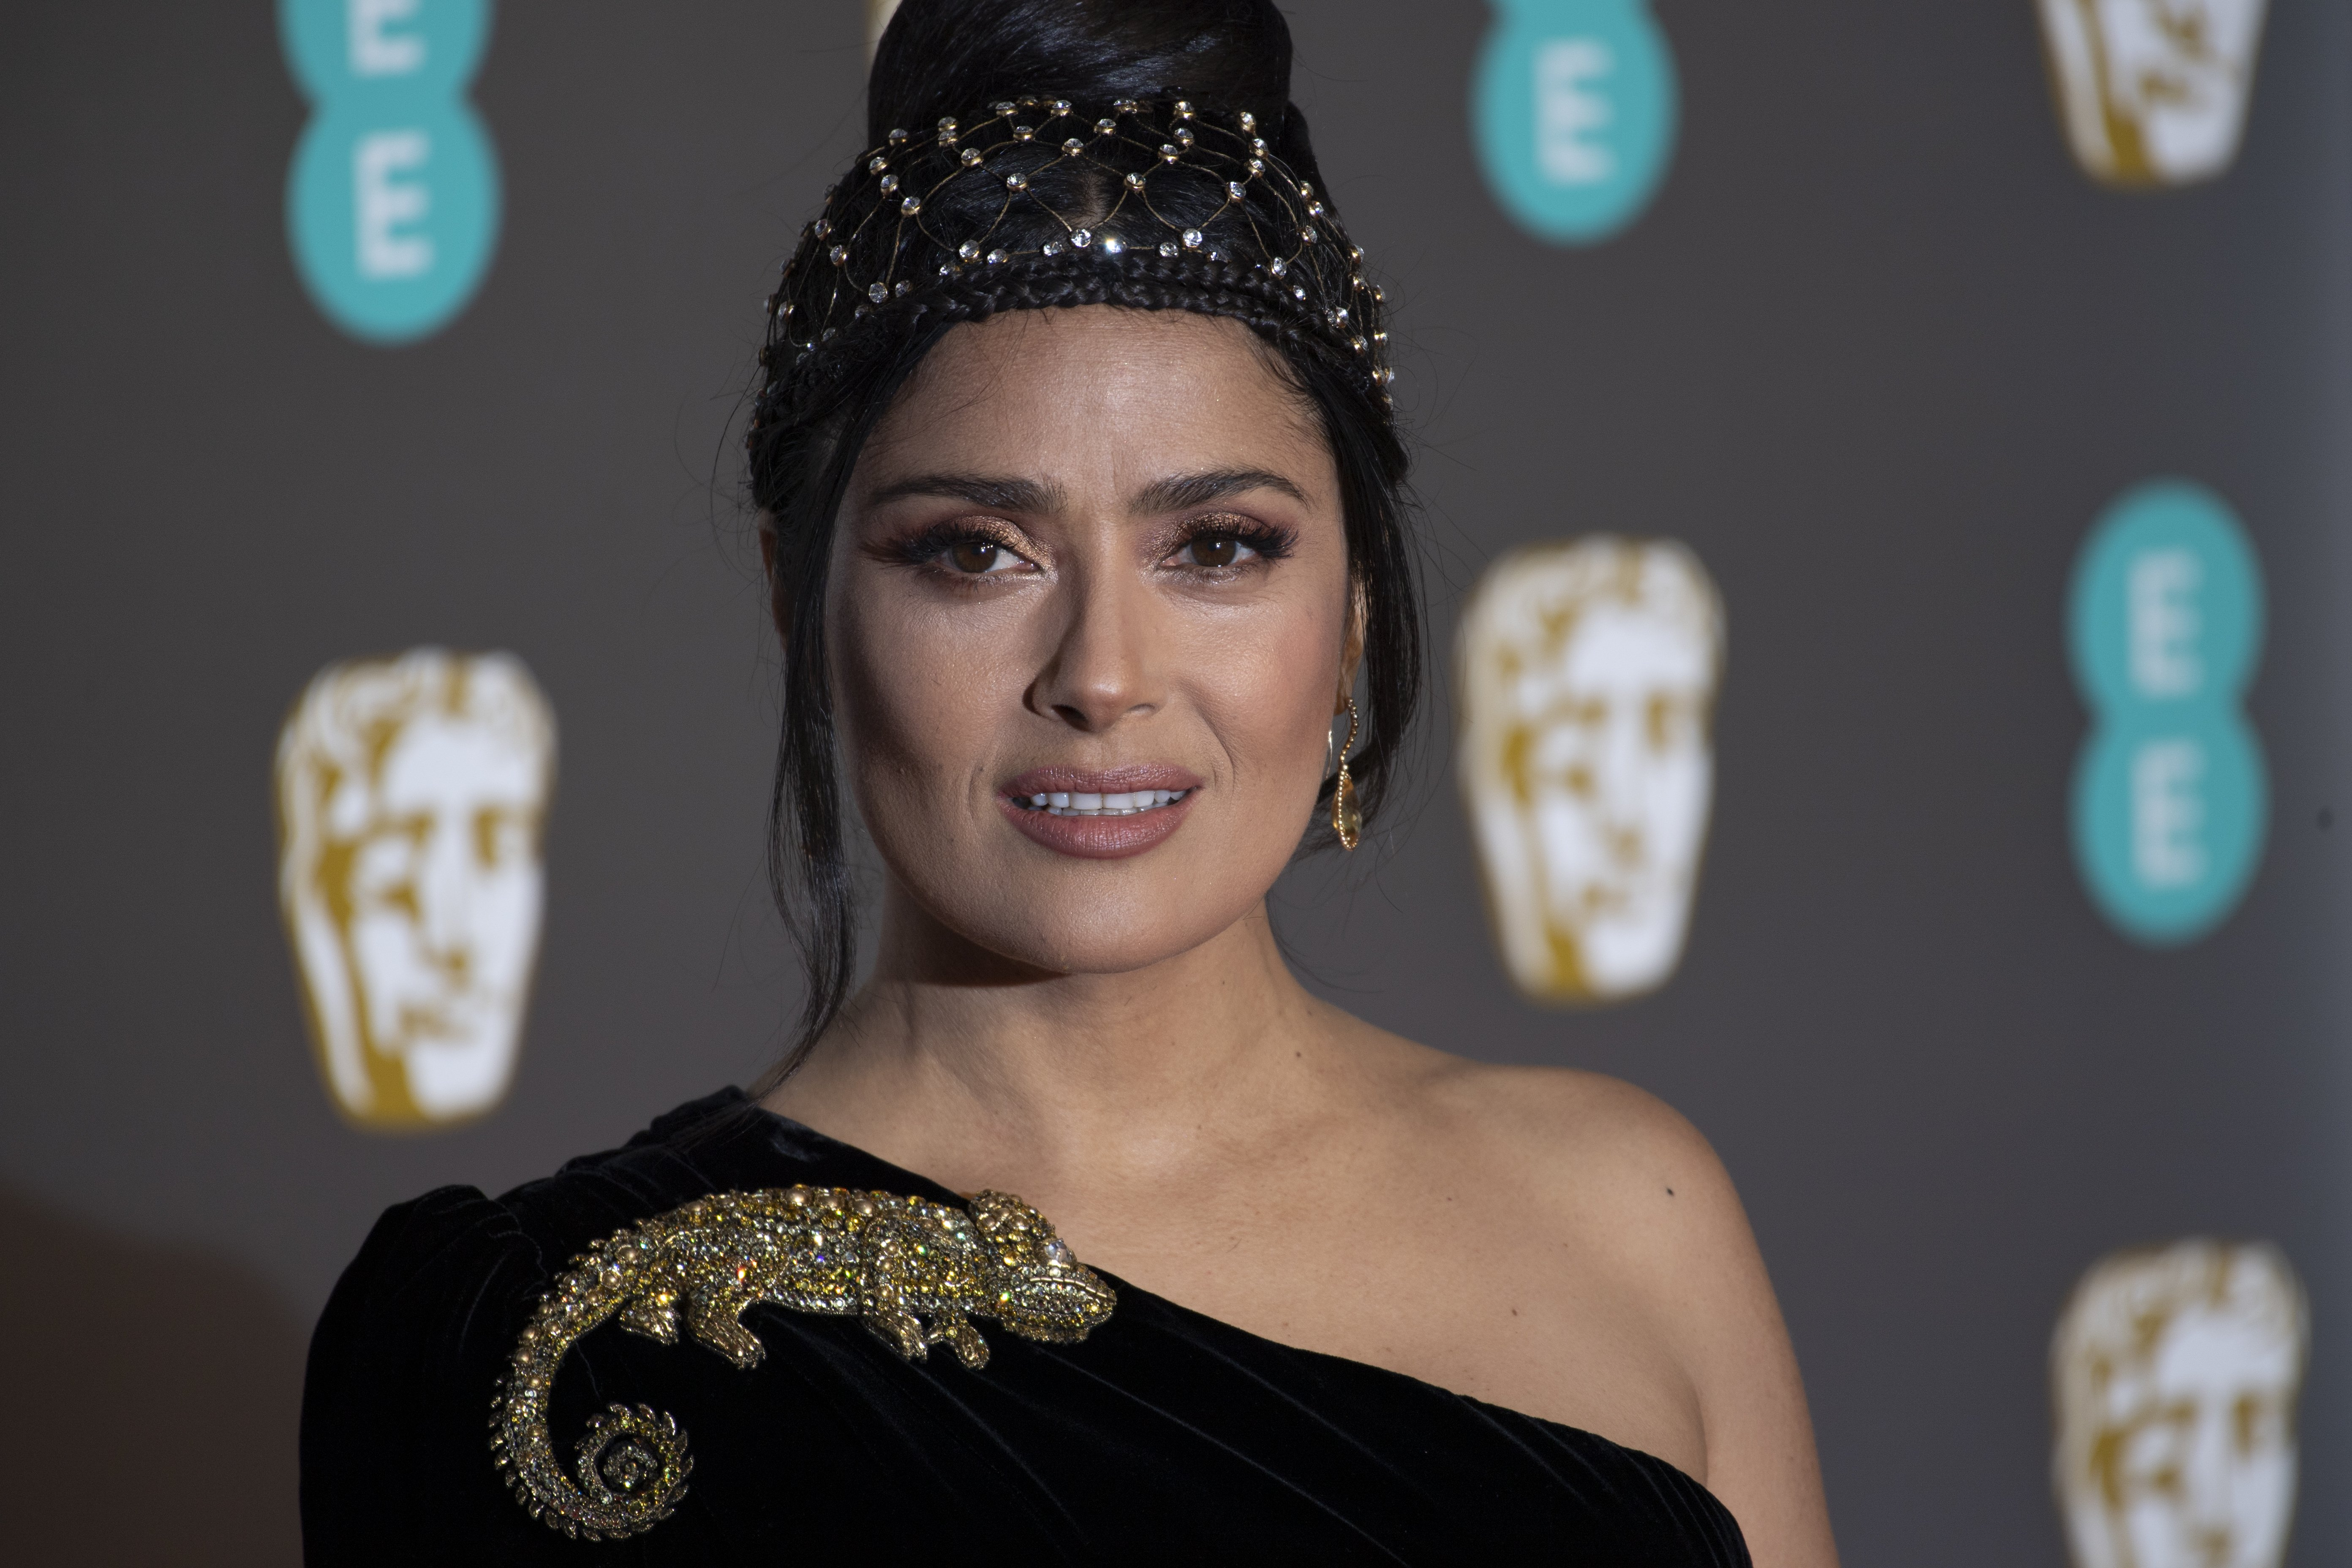 Salma Hayek attends the British Academy Film Awards on February 10, 2019, in London, England. | Source: Getty Images.